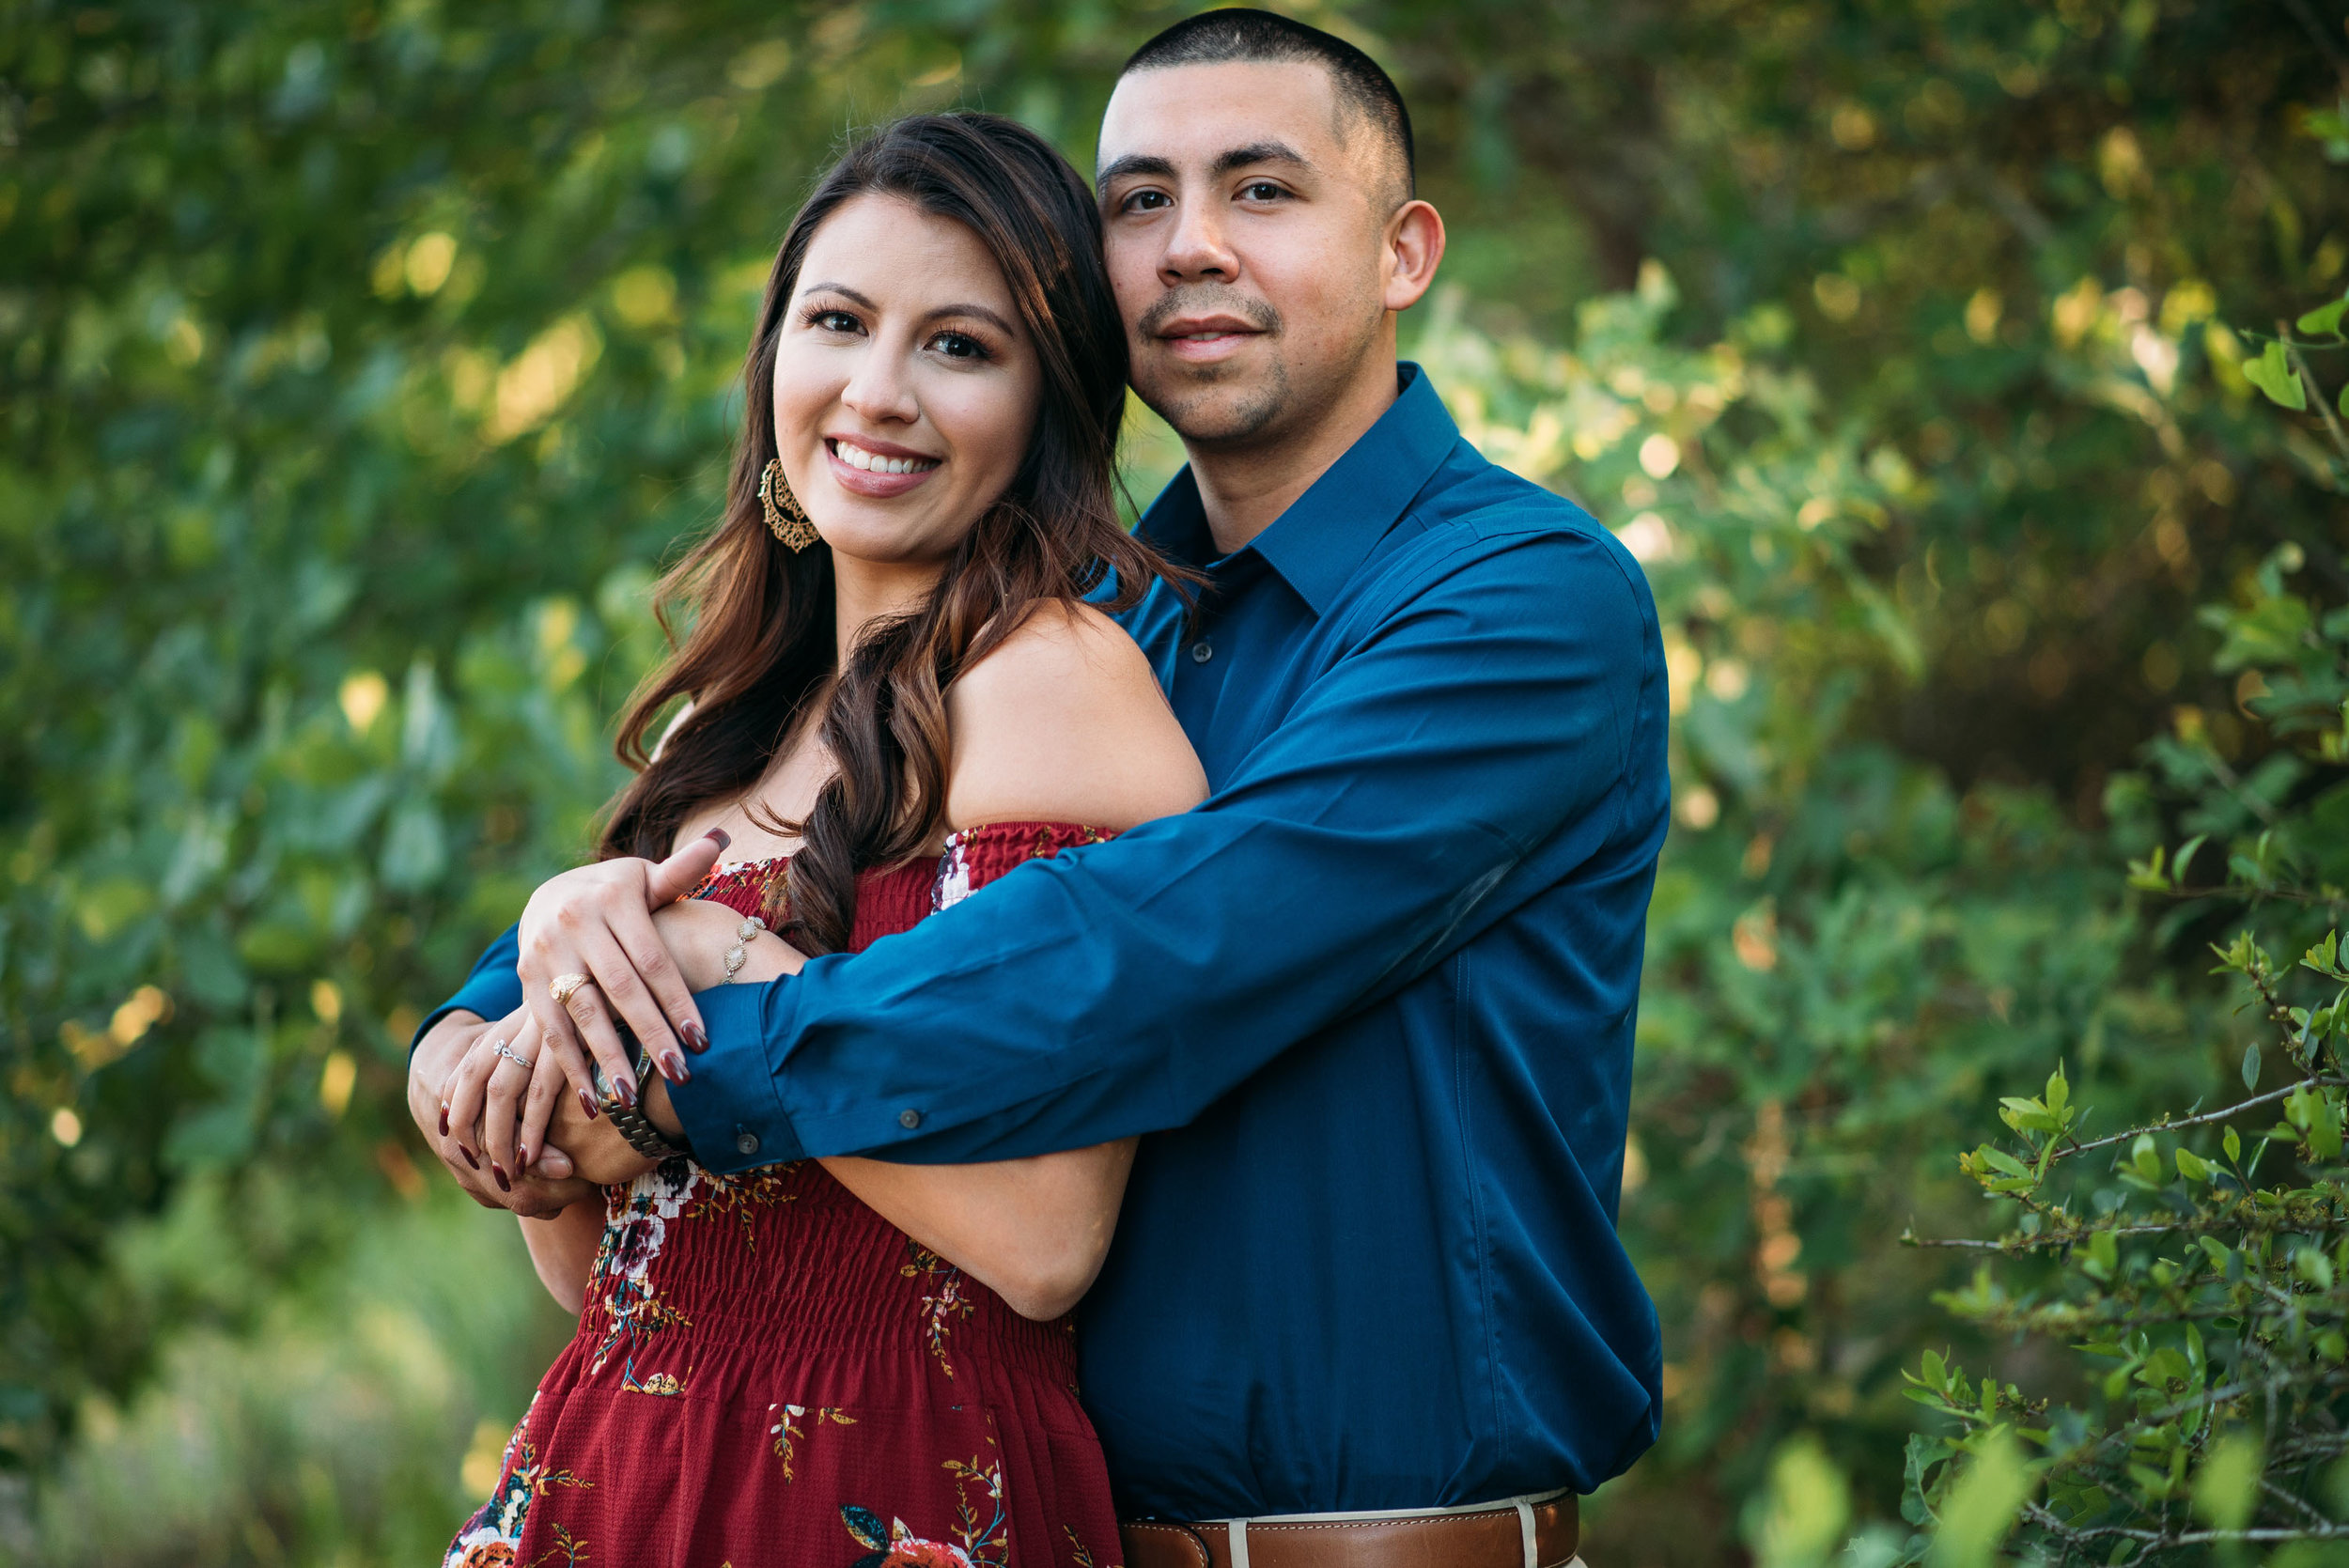 Aggie_Engagement_CollegeStation_LickCreekPark_09.jpg